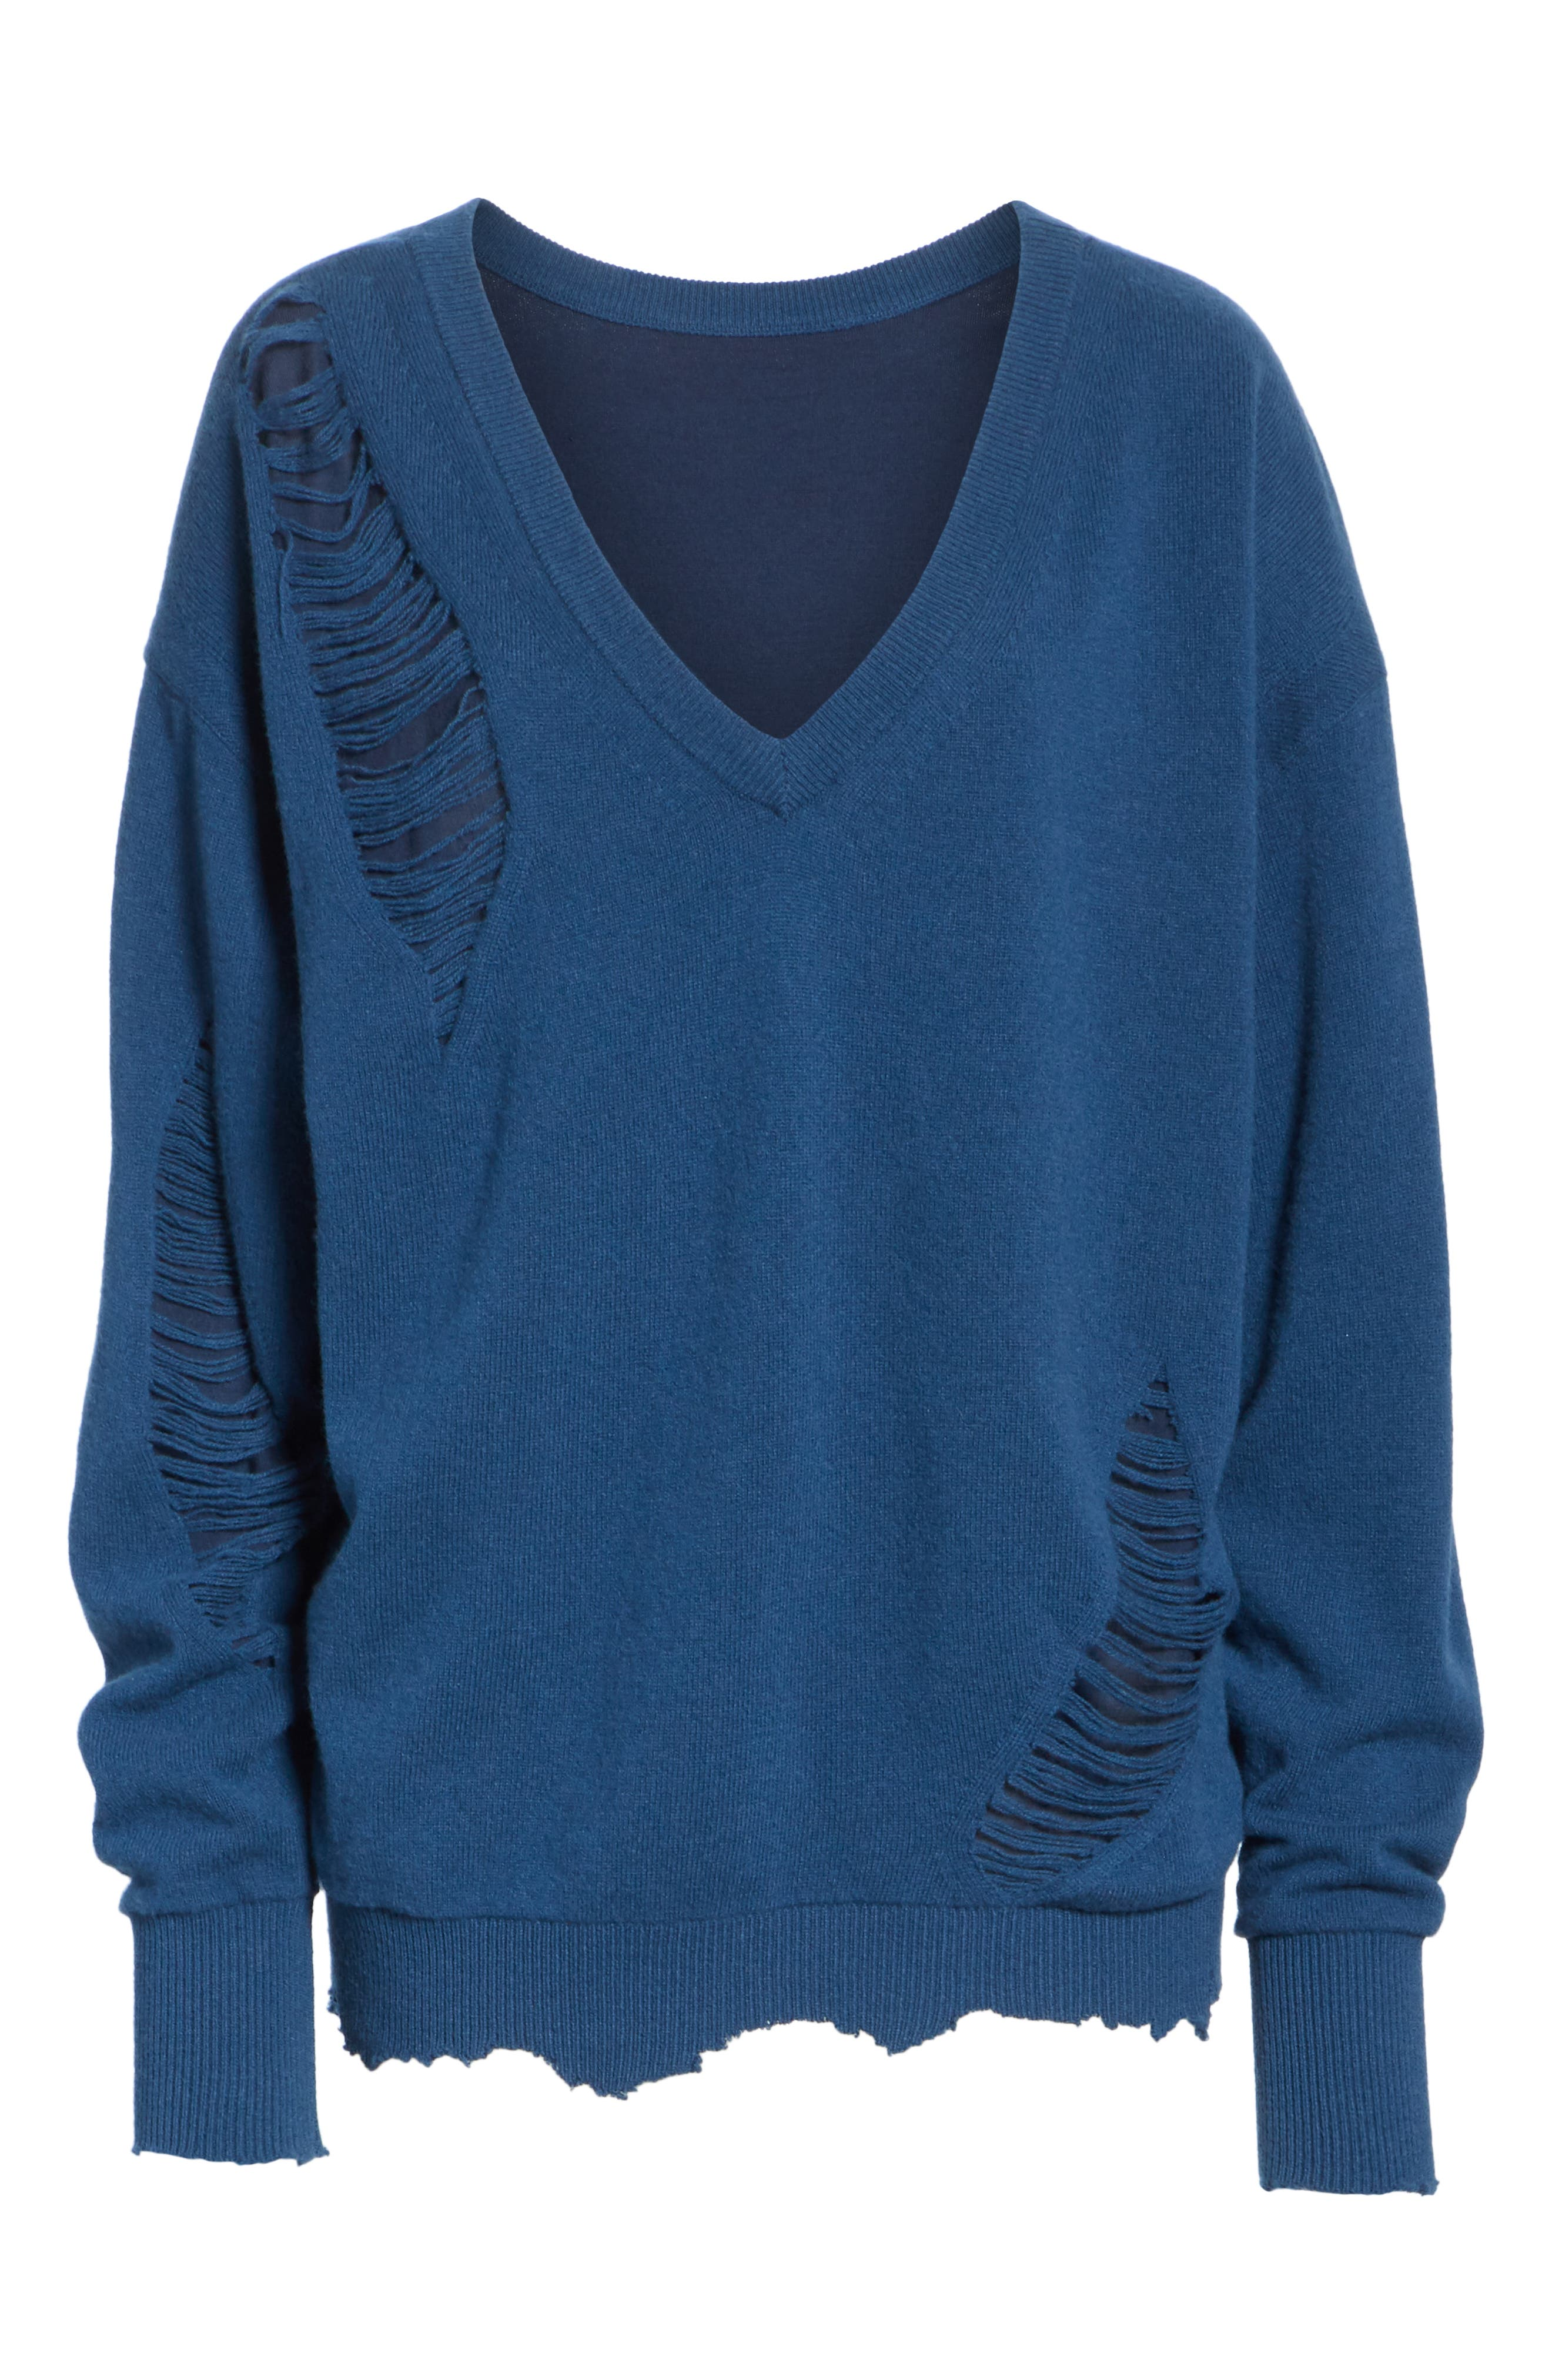 Distressed Wool Sweater,                             Alternate thumbnail 6, color,                             400